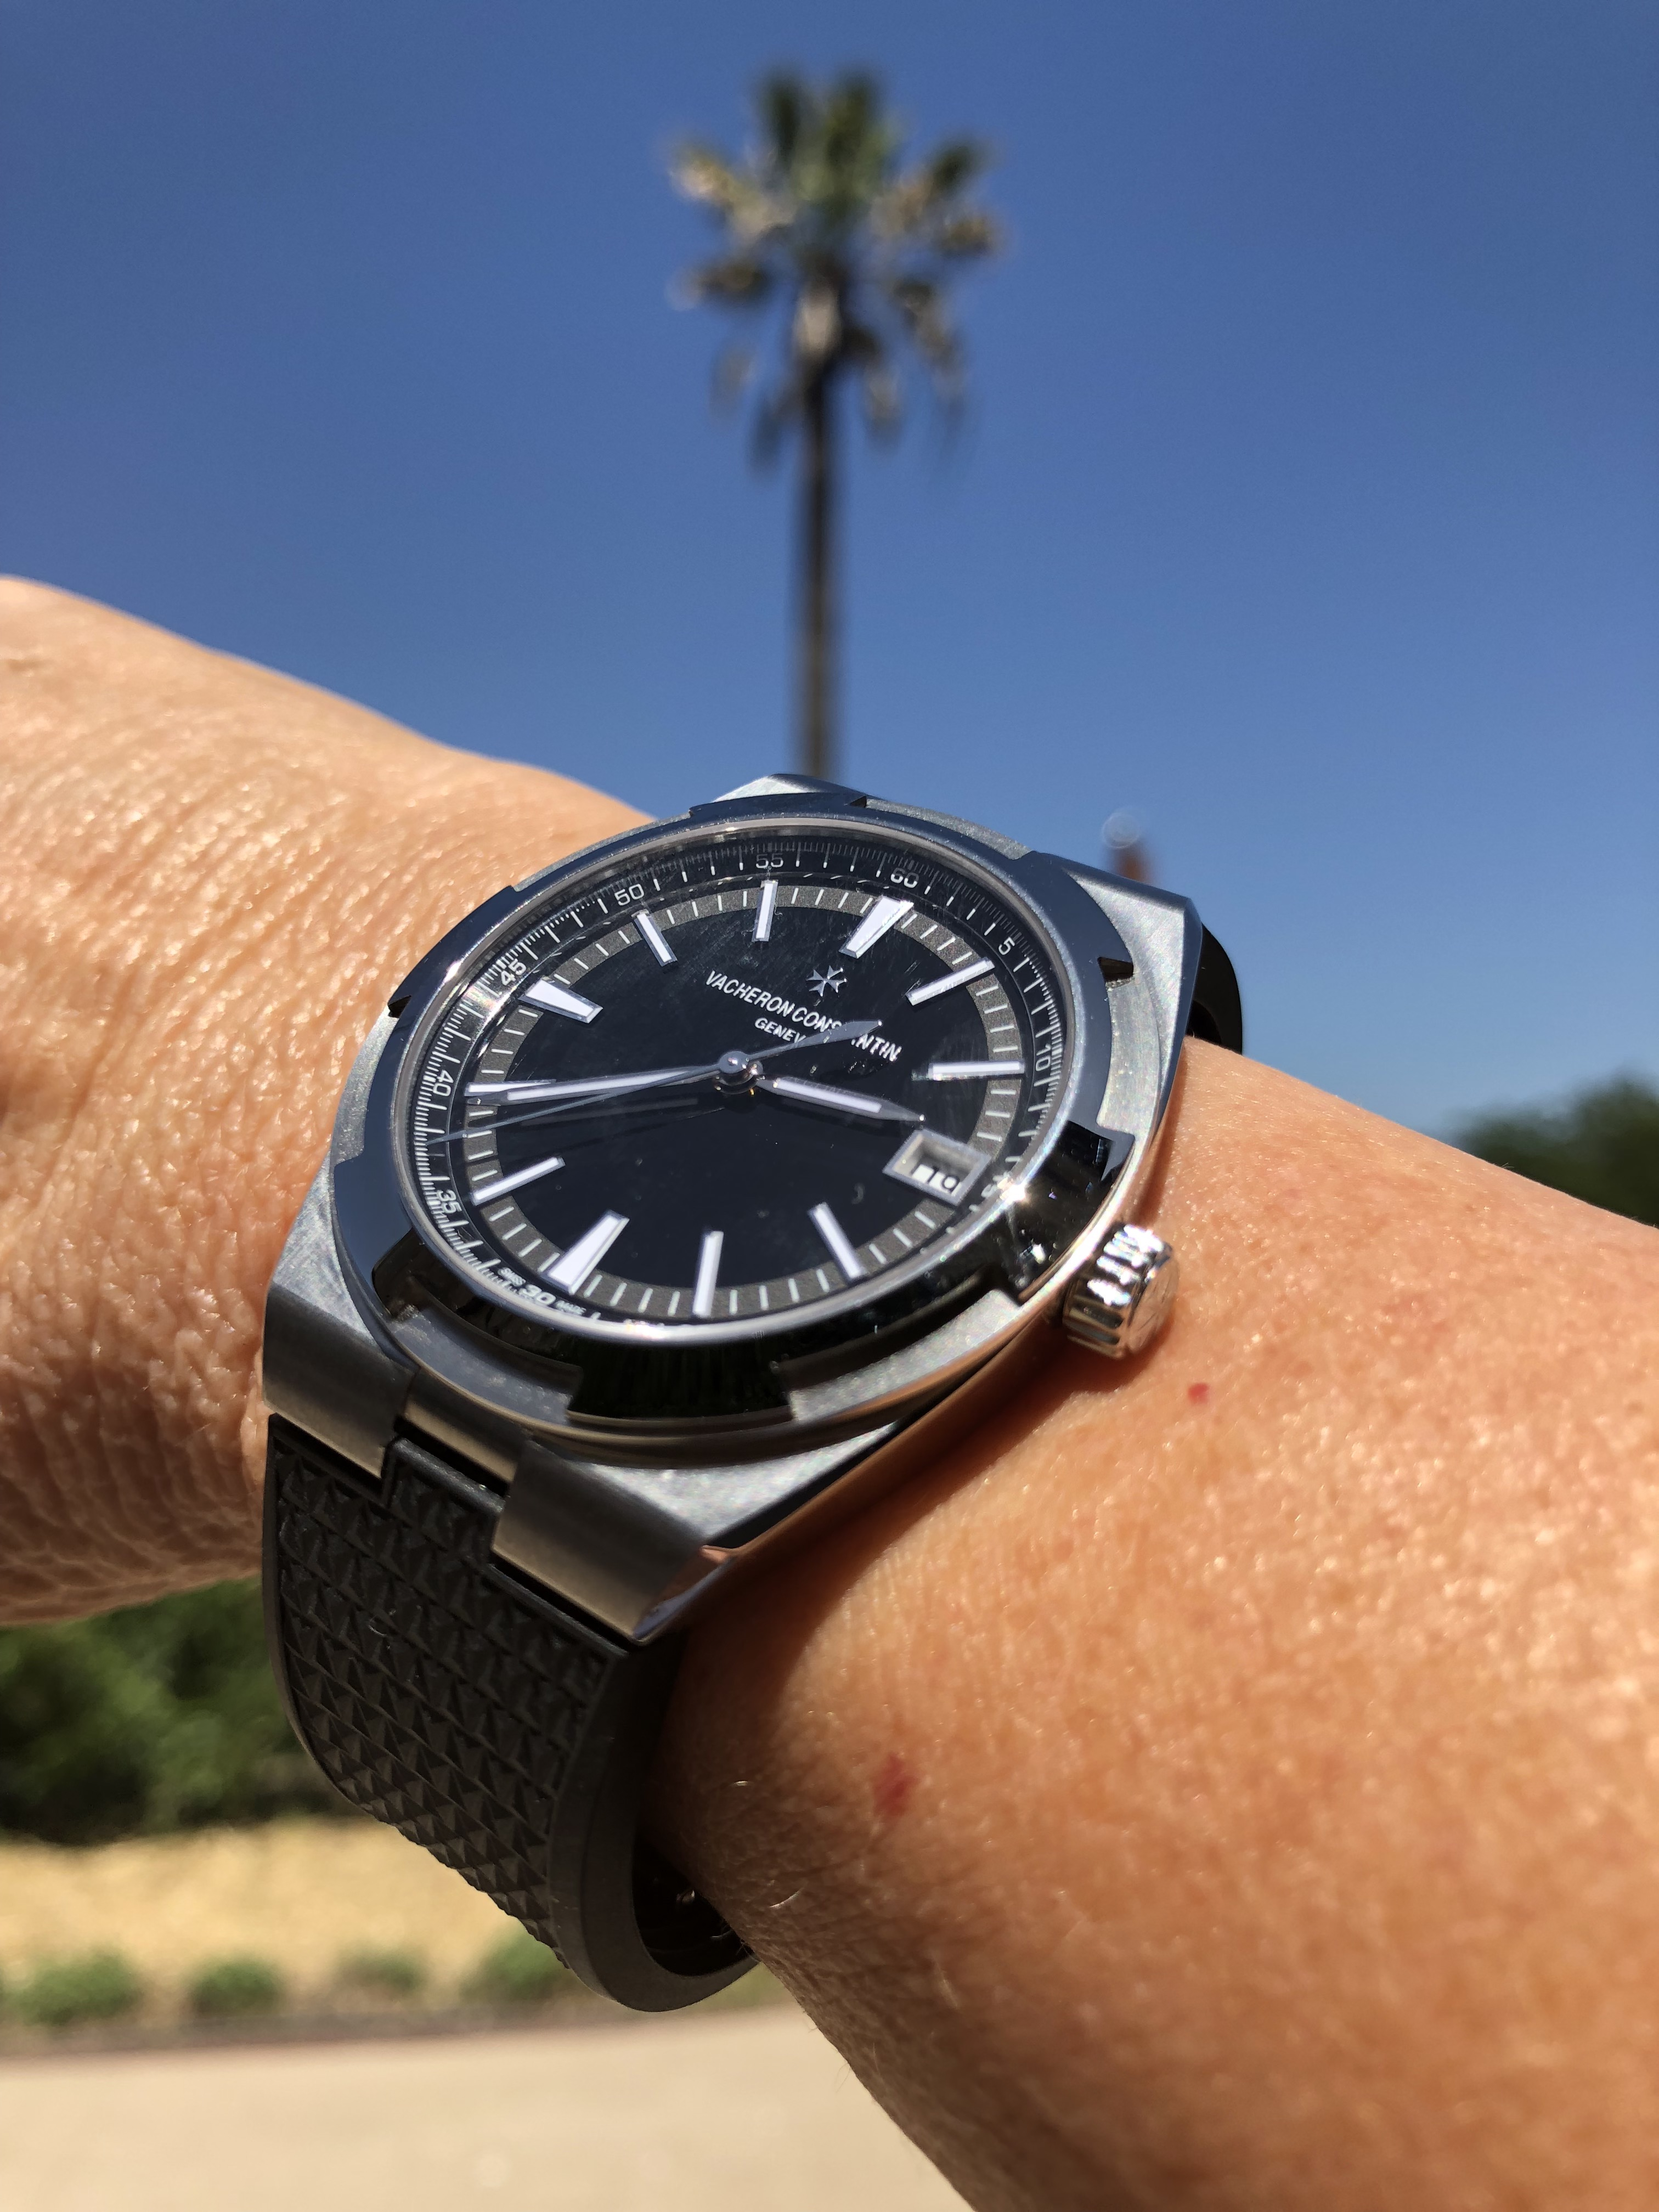 Overseas black dial goes anywhere!